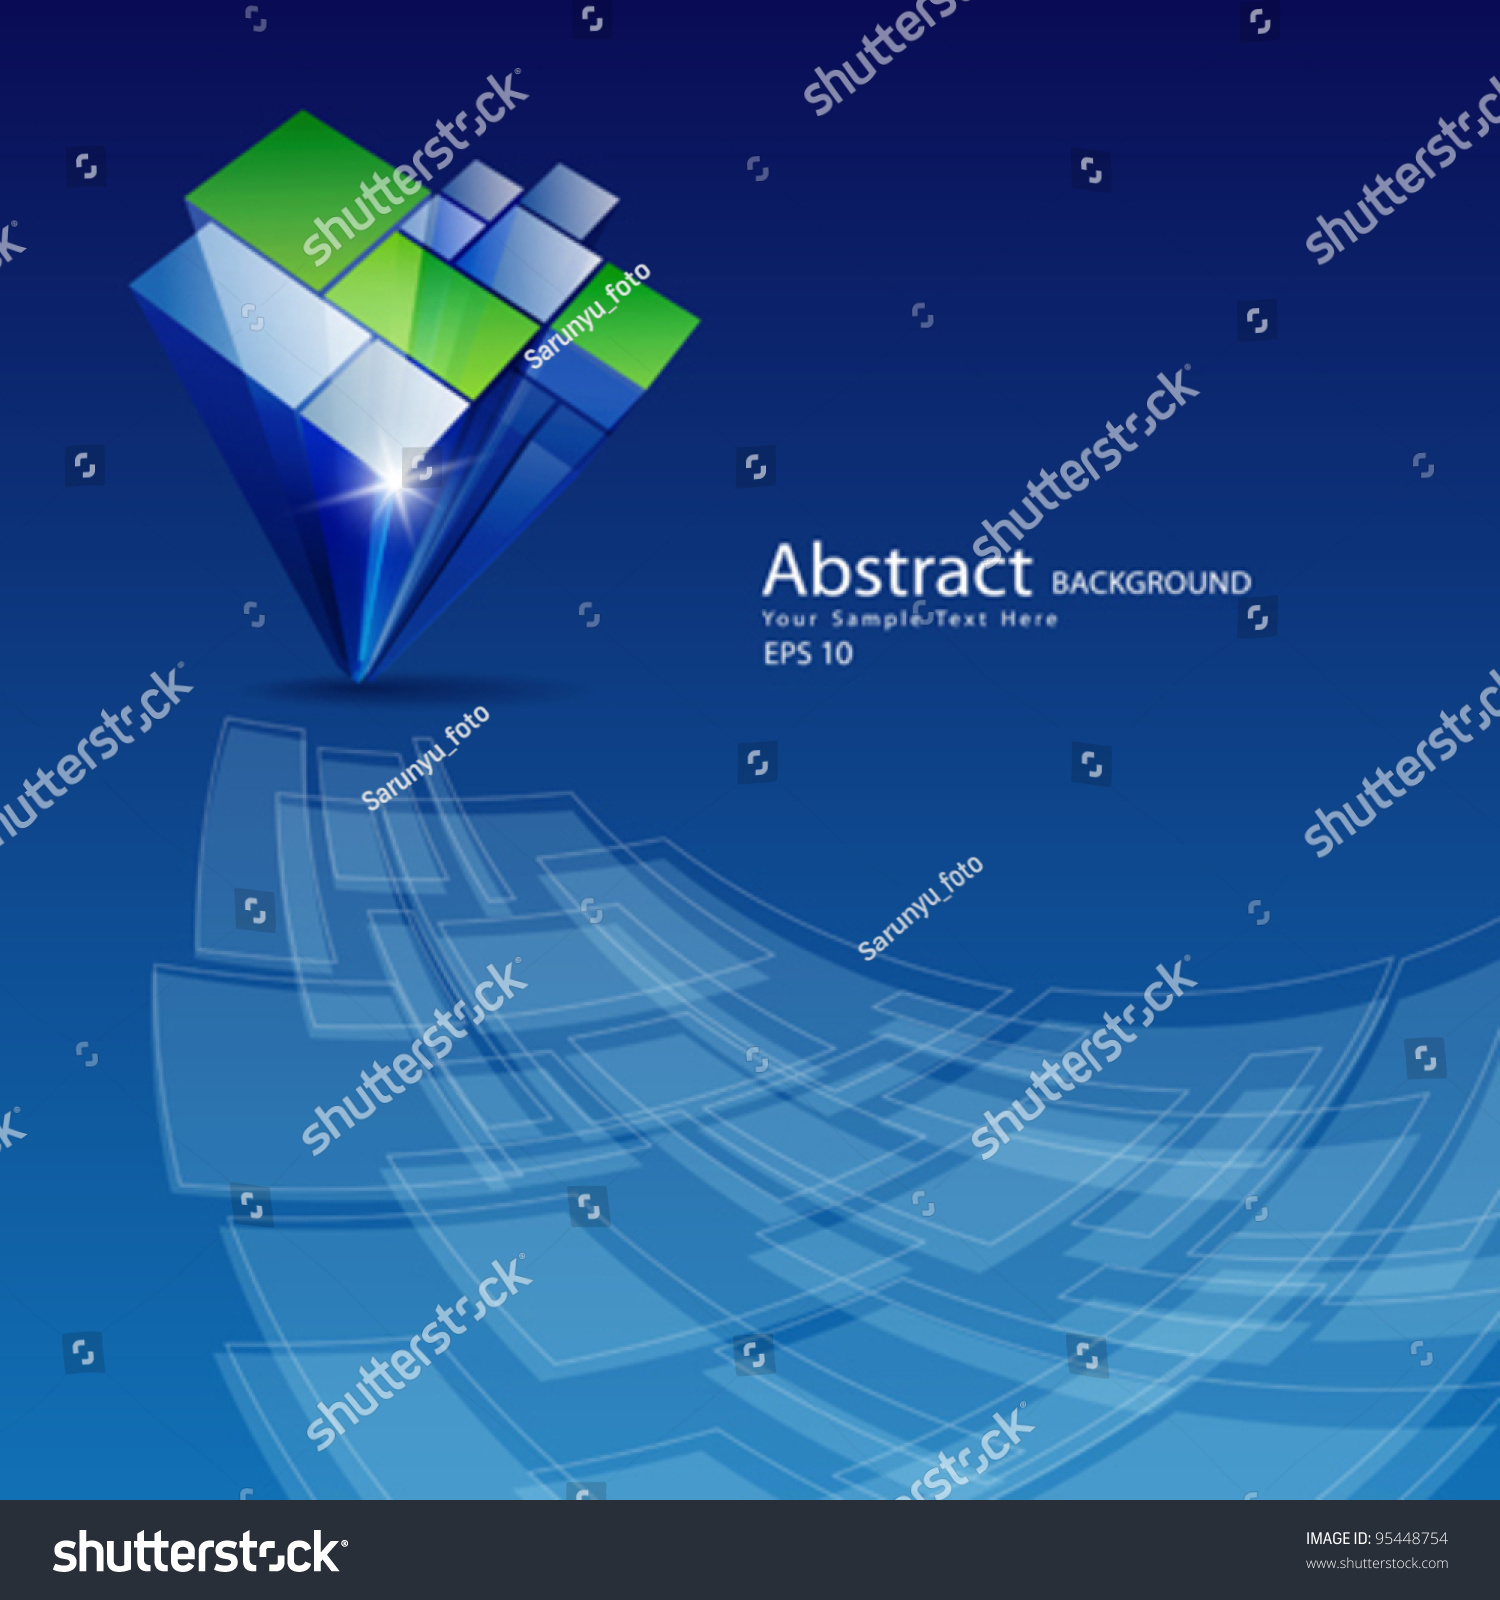 Abstract Architecture Design Background Vector Illustration